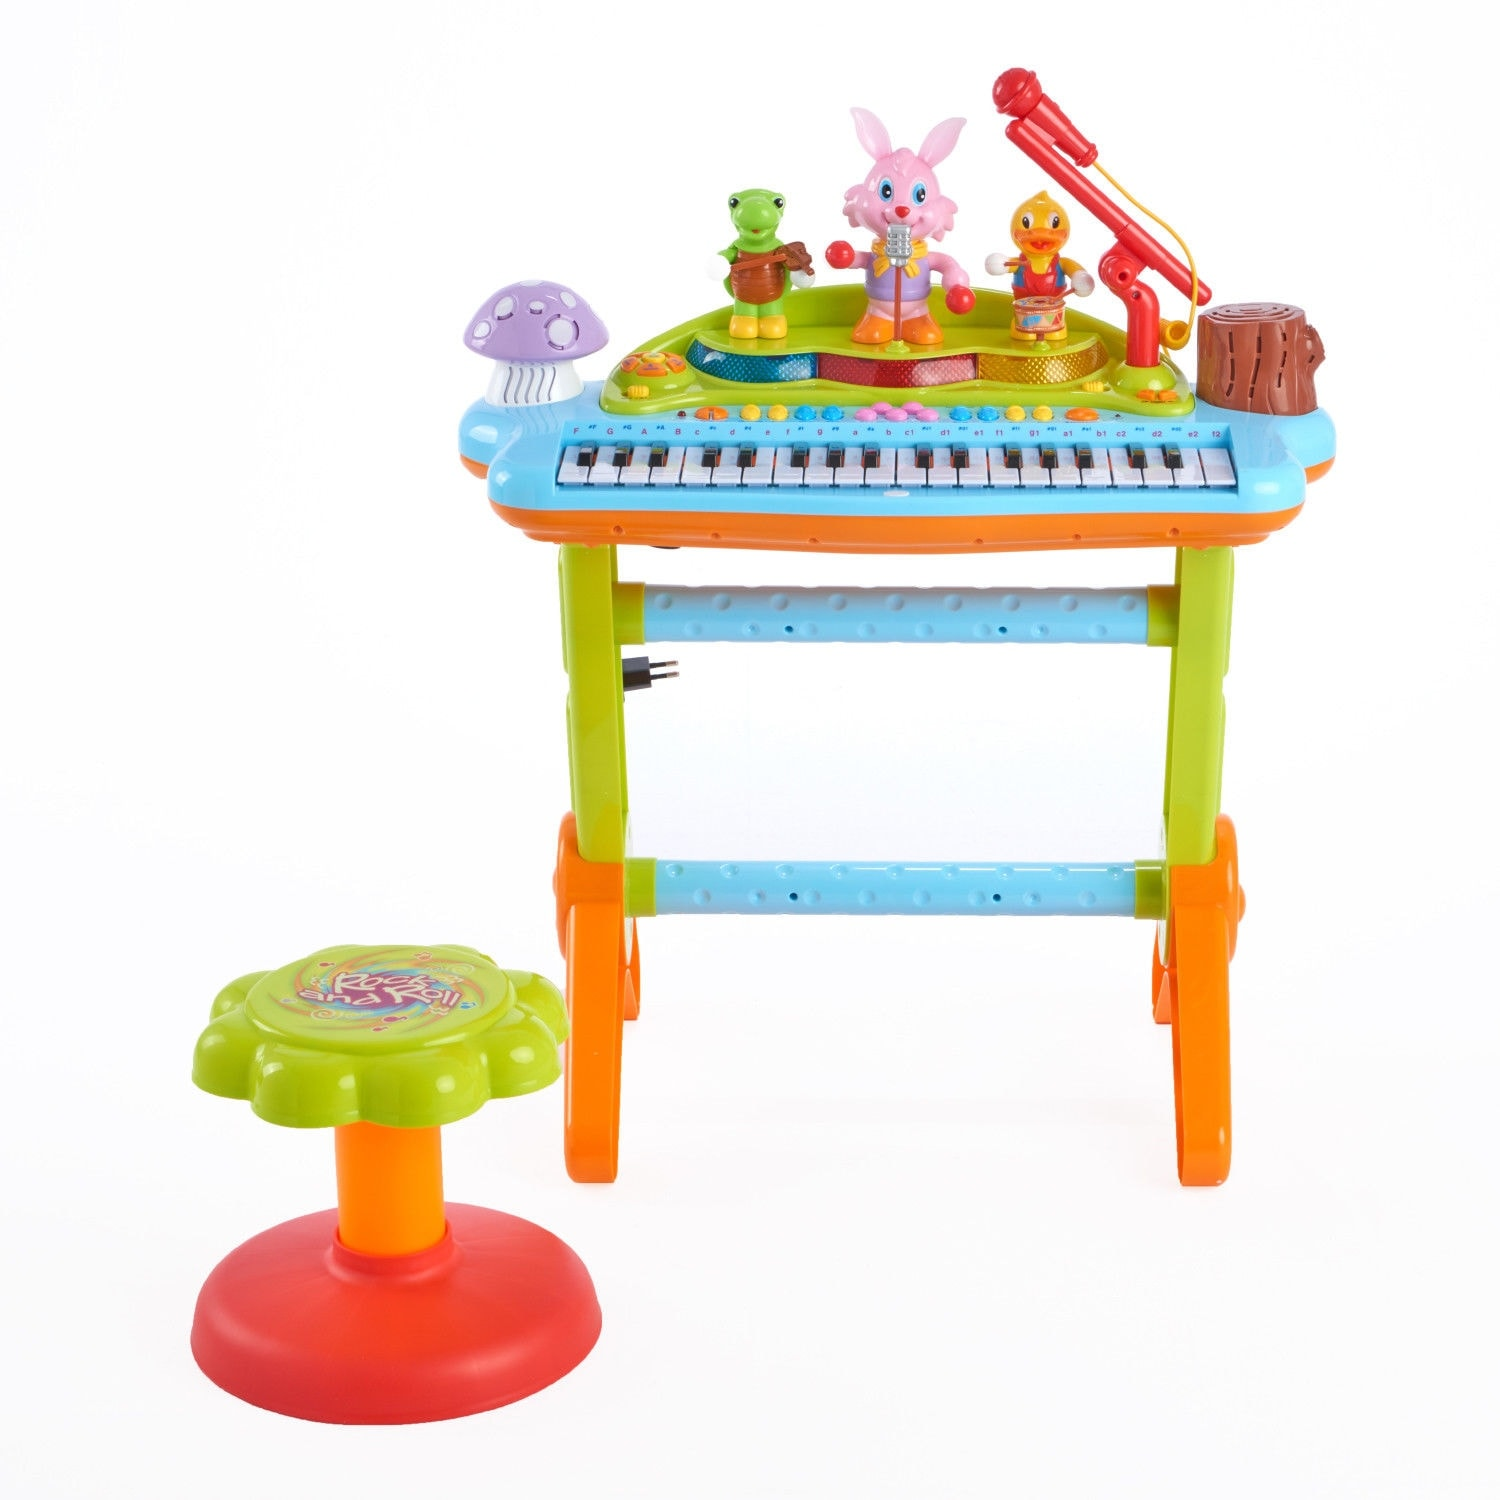 Huile Kids Play Musical Electronic Keyboard Piano Microphone Toy